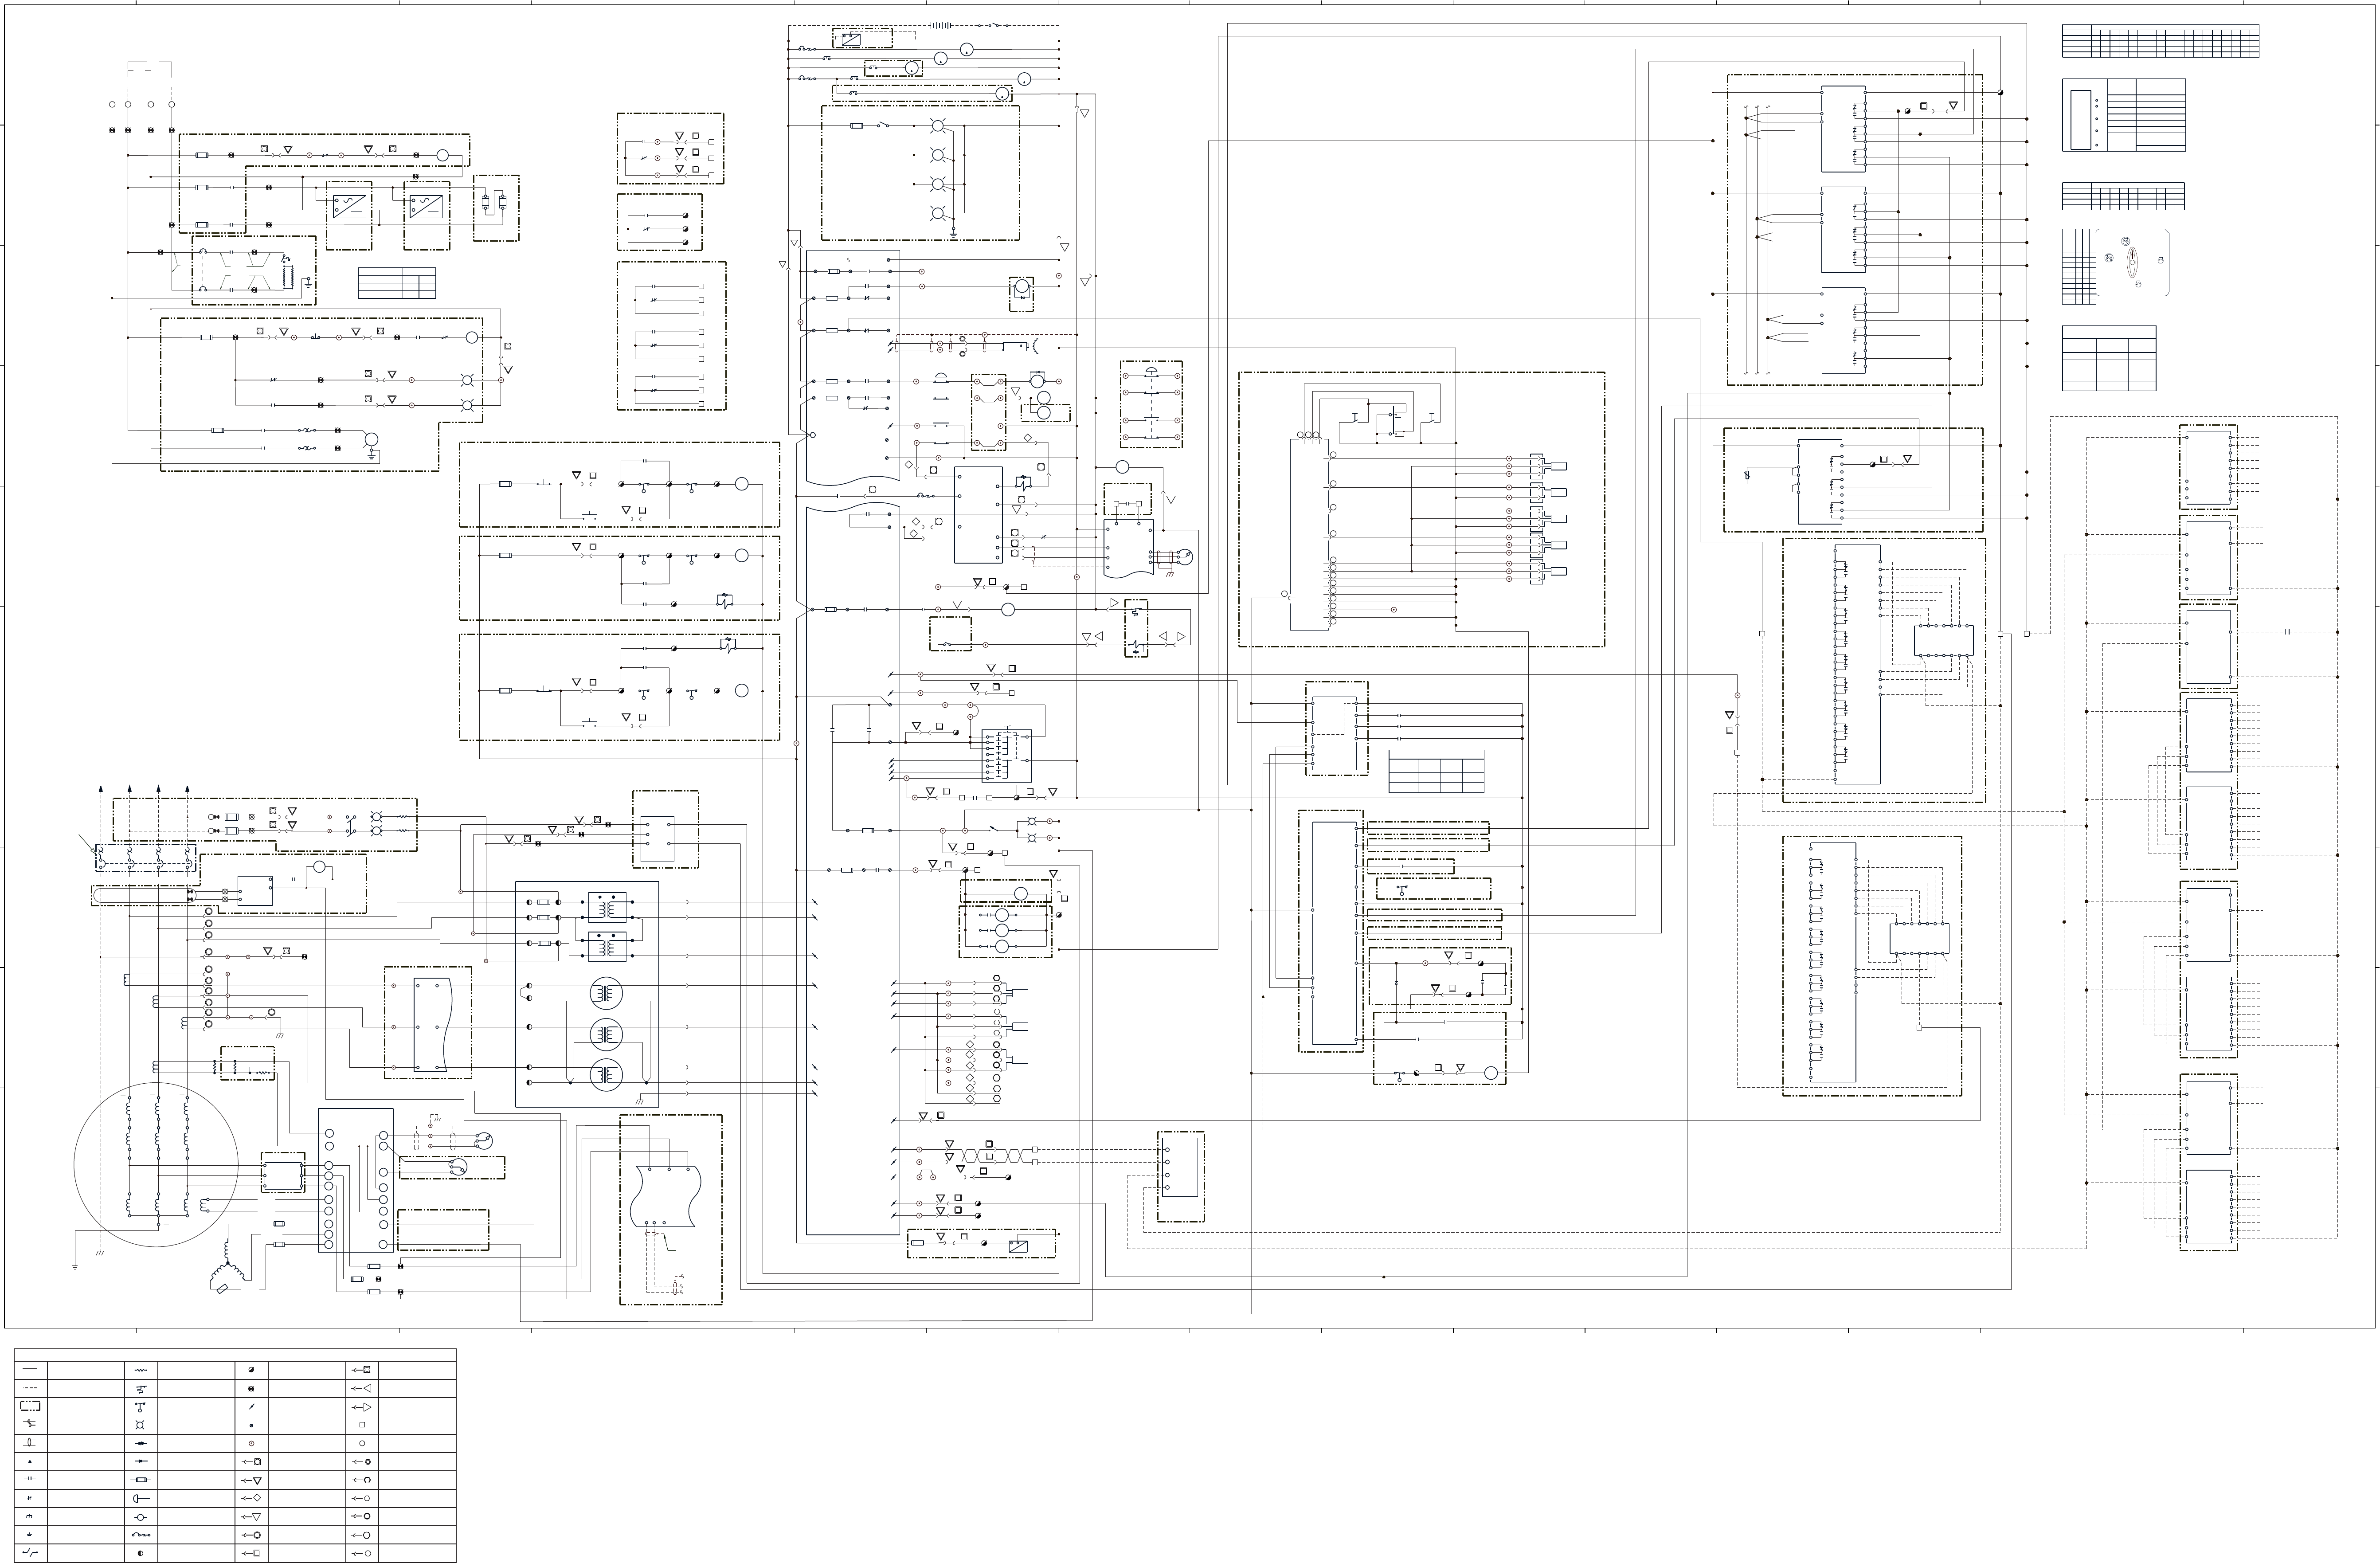 3412C EMCP II FOR PEEC ENGINES ELECTRICAL SYSTEM SCHEMATICS | CAT Machines  Electrical SchematicCAT Machines Electrical Schematic